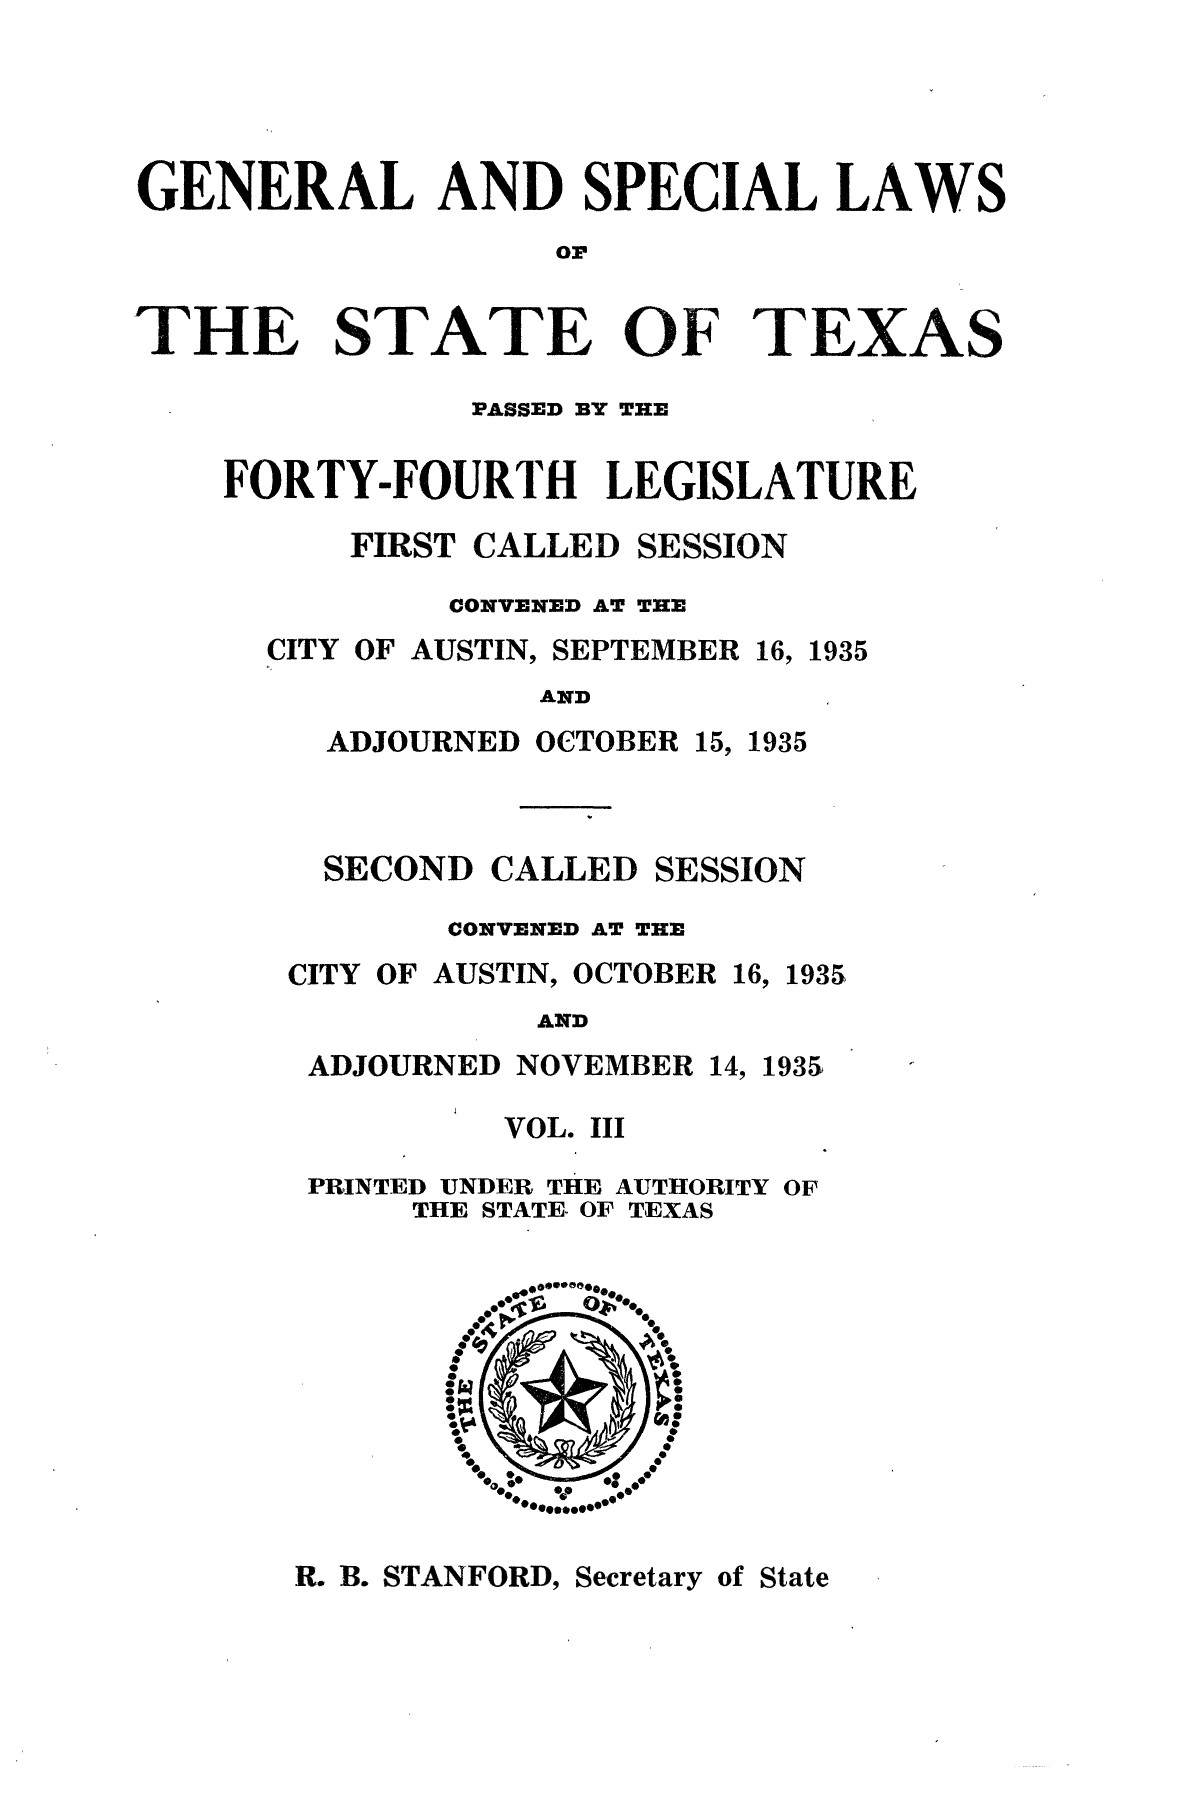 The Laws of Texas, 1935-1937 [Volume 30]                                                                                                      [Sequence #]: 3 of 2460